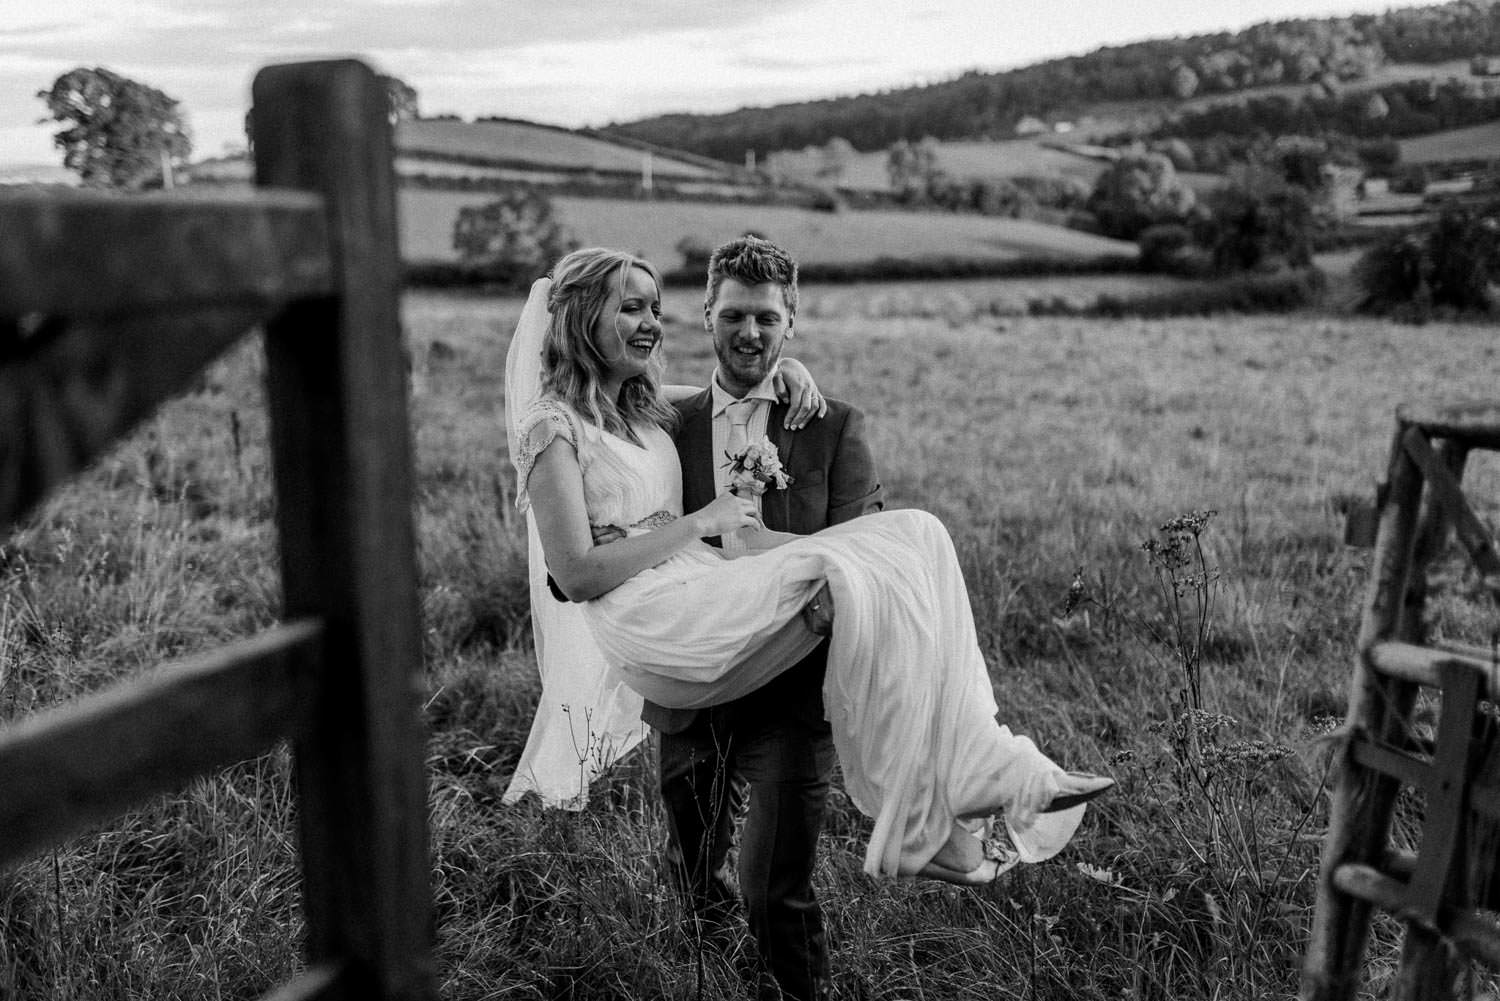 Quirky portrait of bride and groom at The Punch Bowl Inn, Lake District